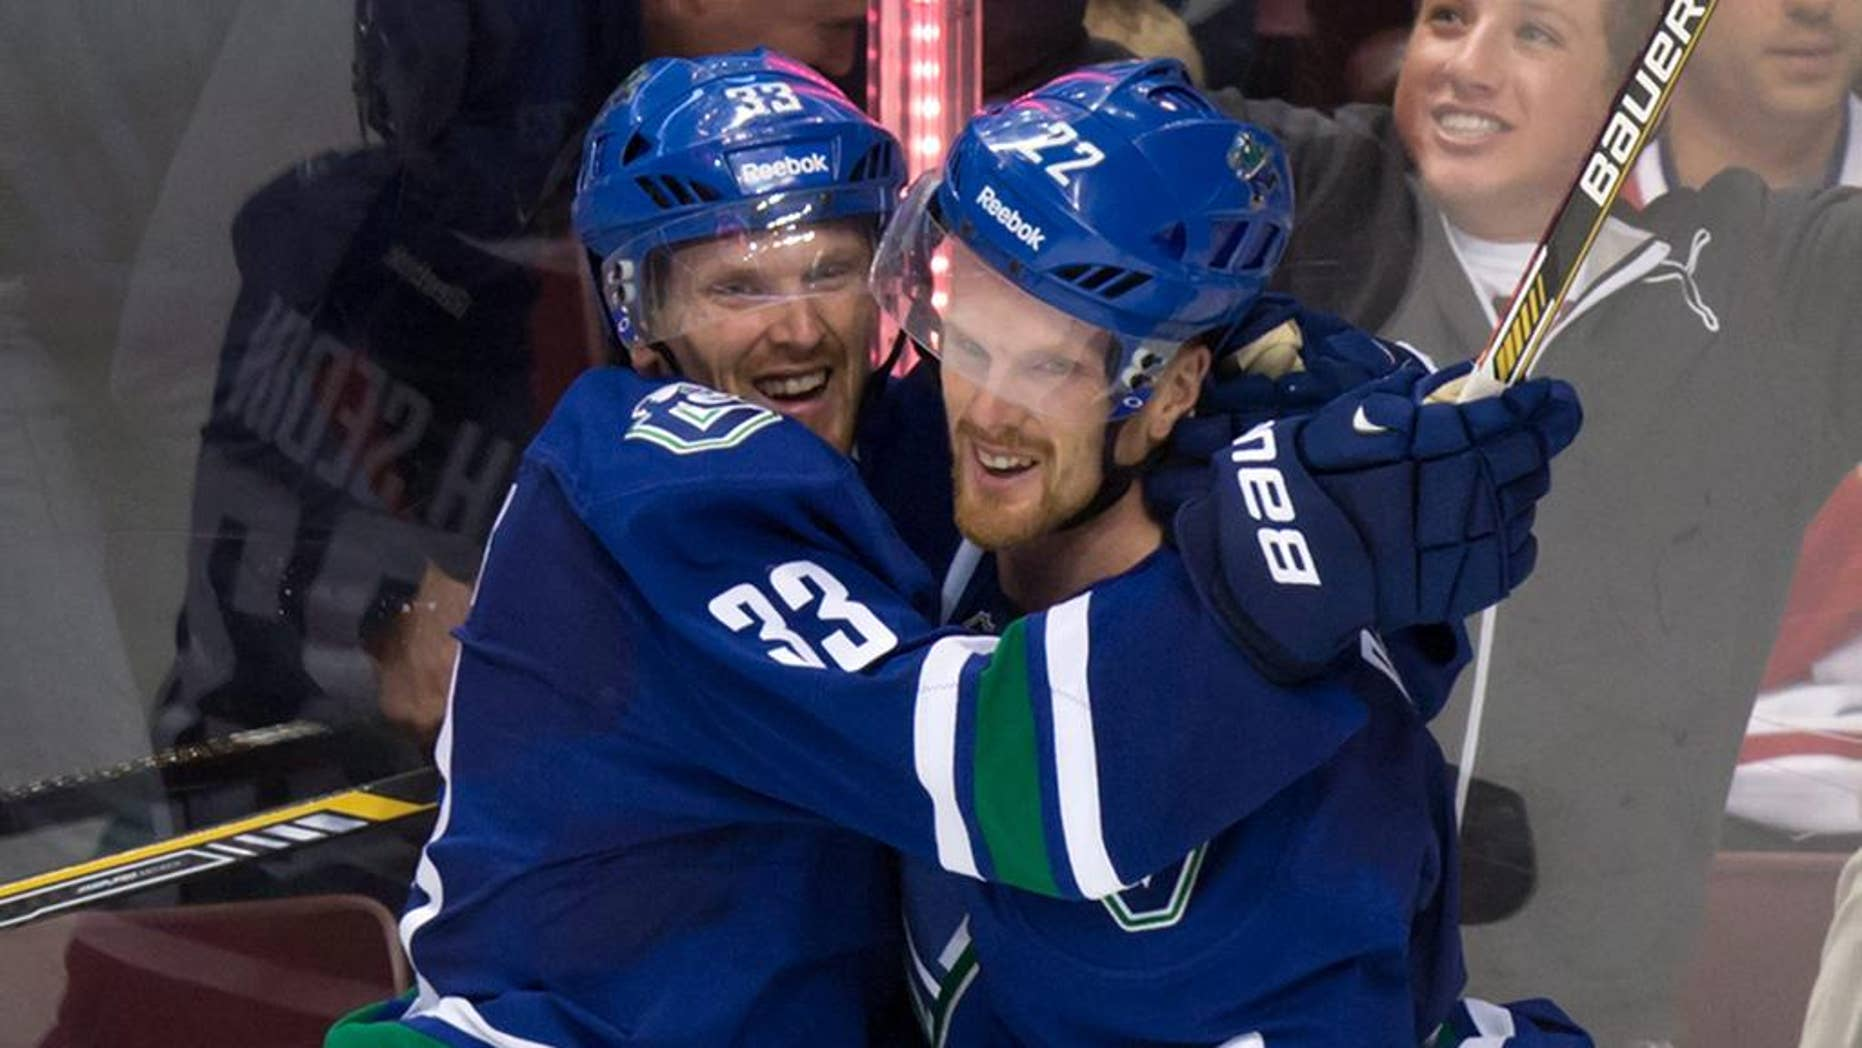 FILE - This Oct. 30, 2014, file photo shows Vancouver Canucks' Daniel Sedin, right, celebrating with his twin brother Henrik Sedin, both of Sweden, after scoring the winning goal against the Montreal Canadiens at an NHL hockey game in Vancouver. After the Canucks missed the playoffs last spring, they overhauled their front office and stripped their roster to its foundation, the Sedin twins. Many expected a lengthy rebuild but the revamped Canucks are off to a sizzling start in the Pacific Division. (AP Photo/The Canadian Press,  Darryl Dyck,File)